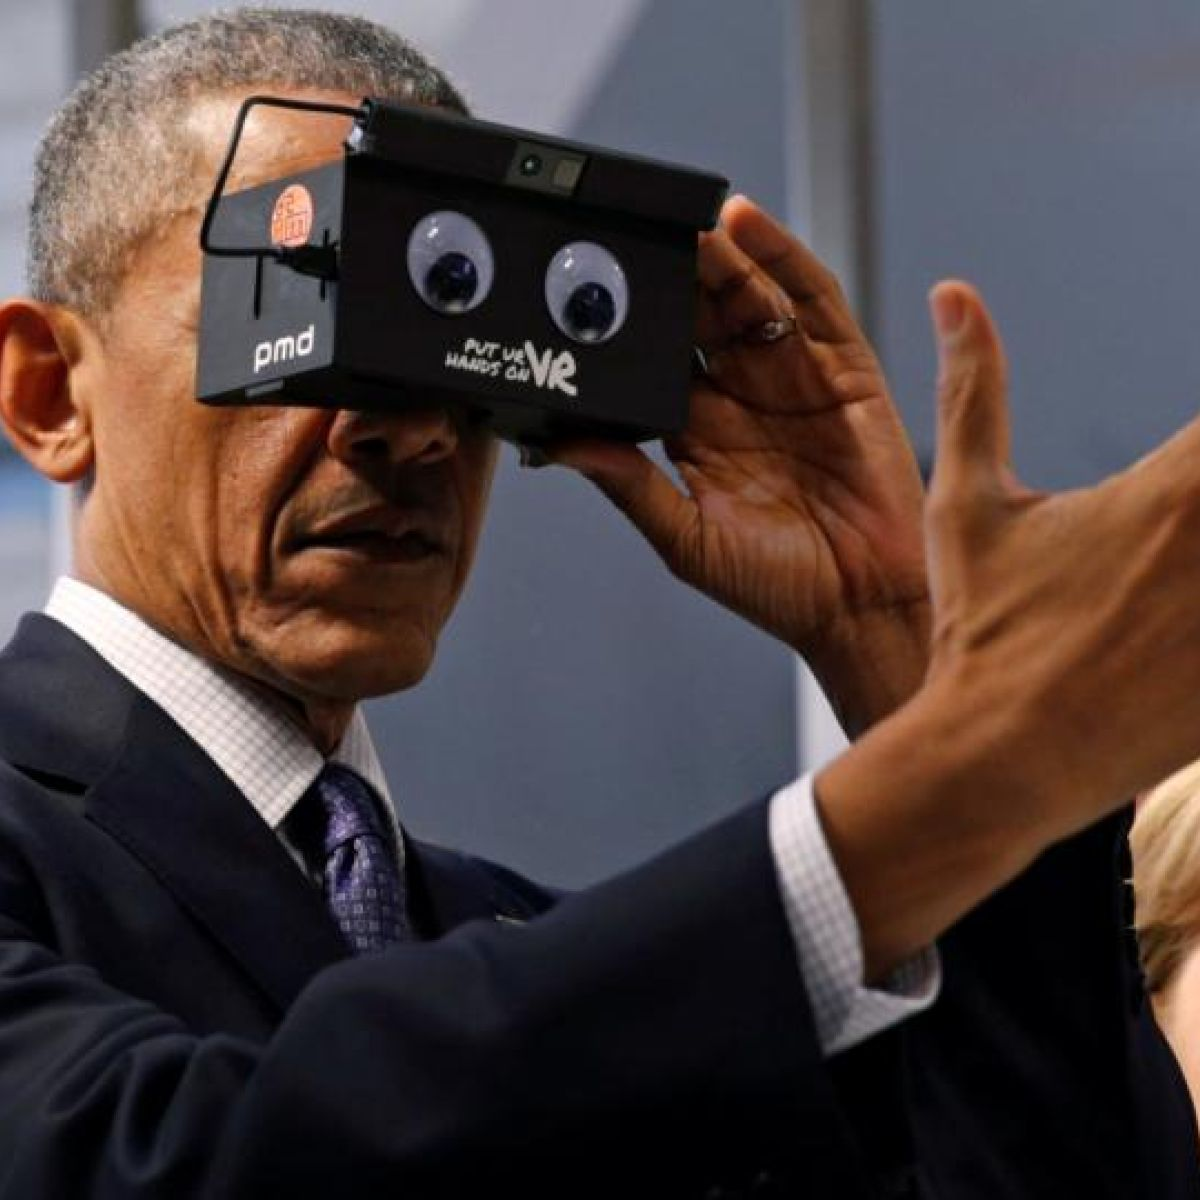 Barack Obama Porn virtual reality: it's more than shoot-'em-up games and full